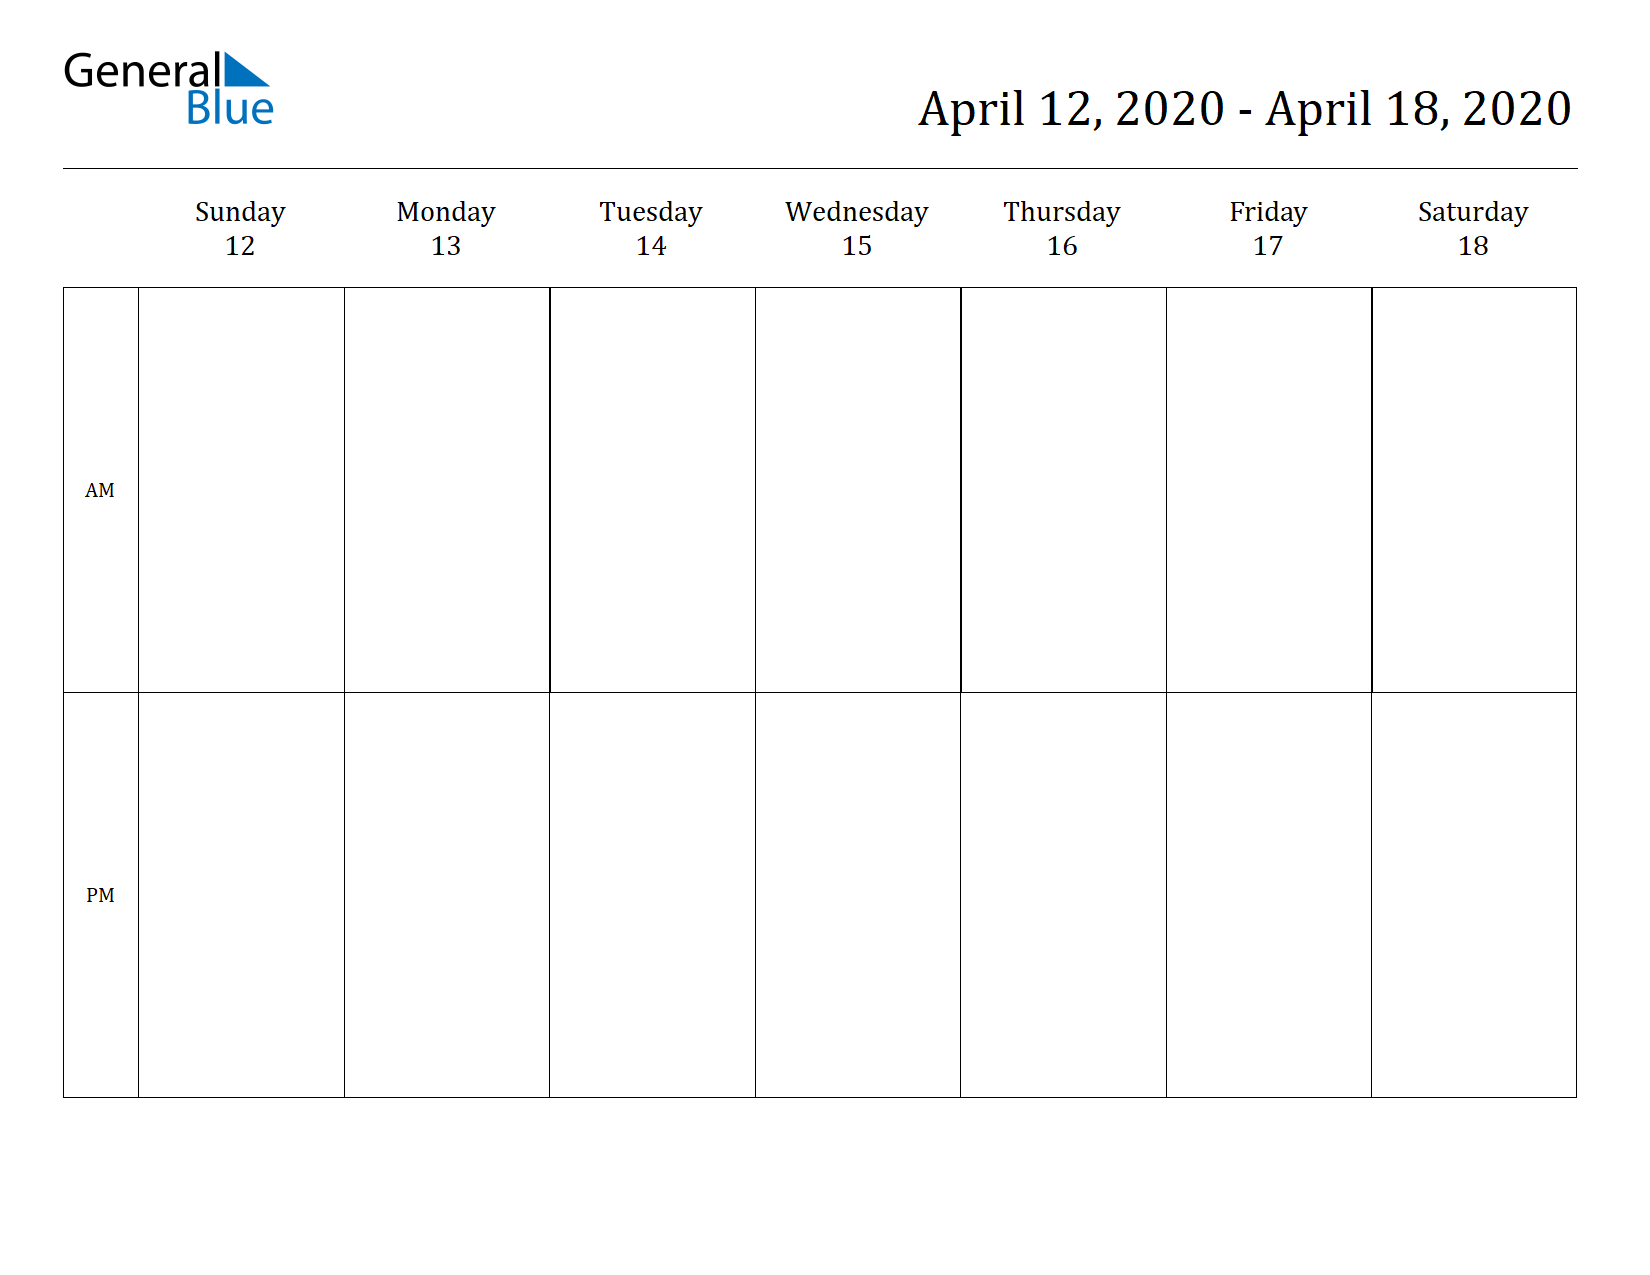 Weekly Calendar for Apr 12, 2020 to Apr 18, 2020